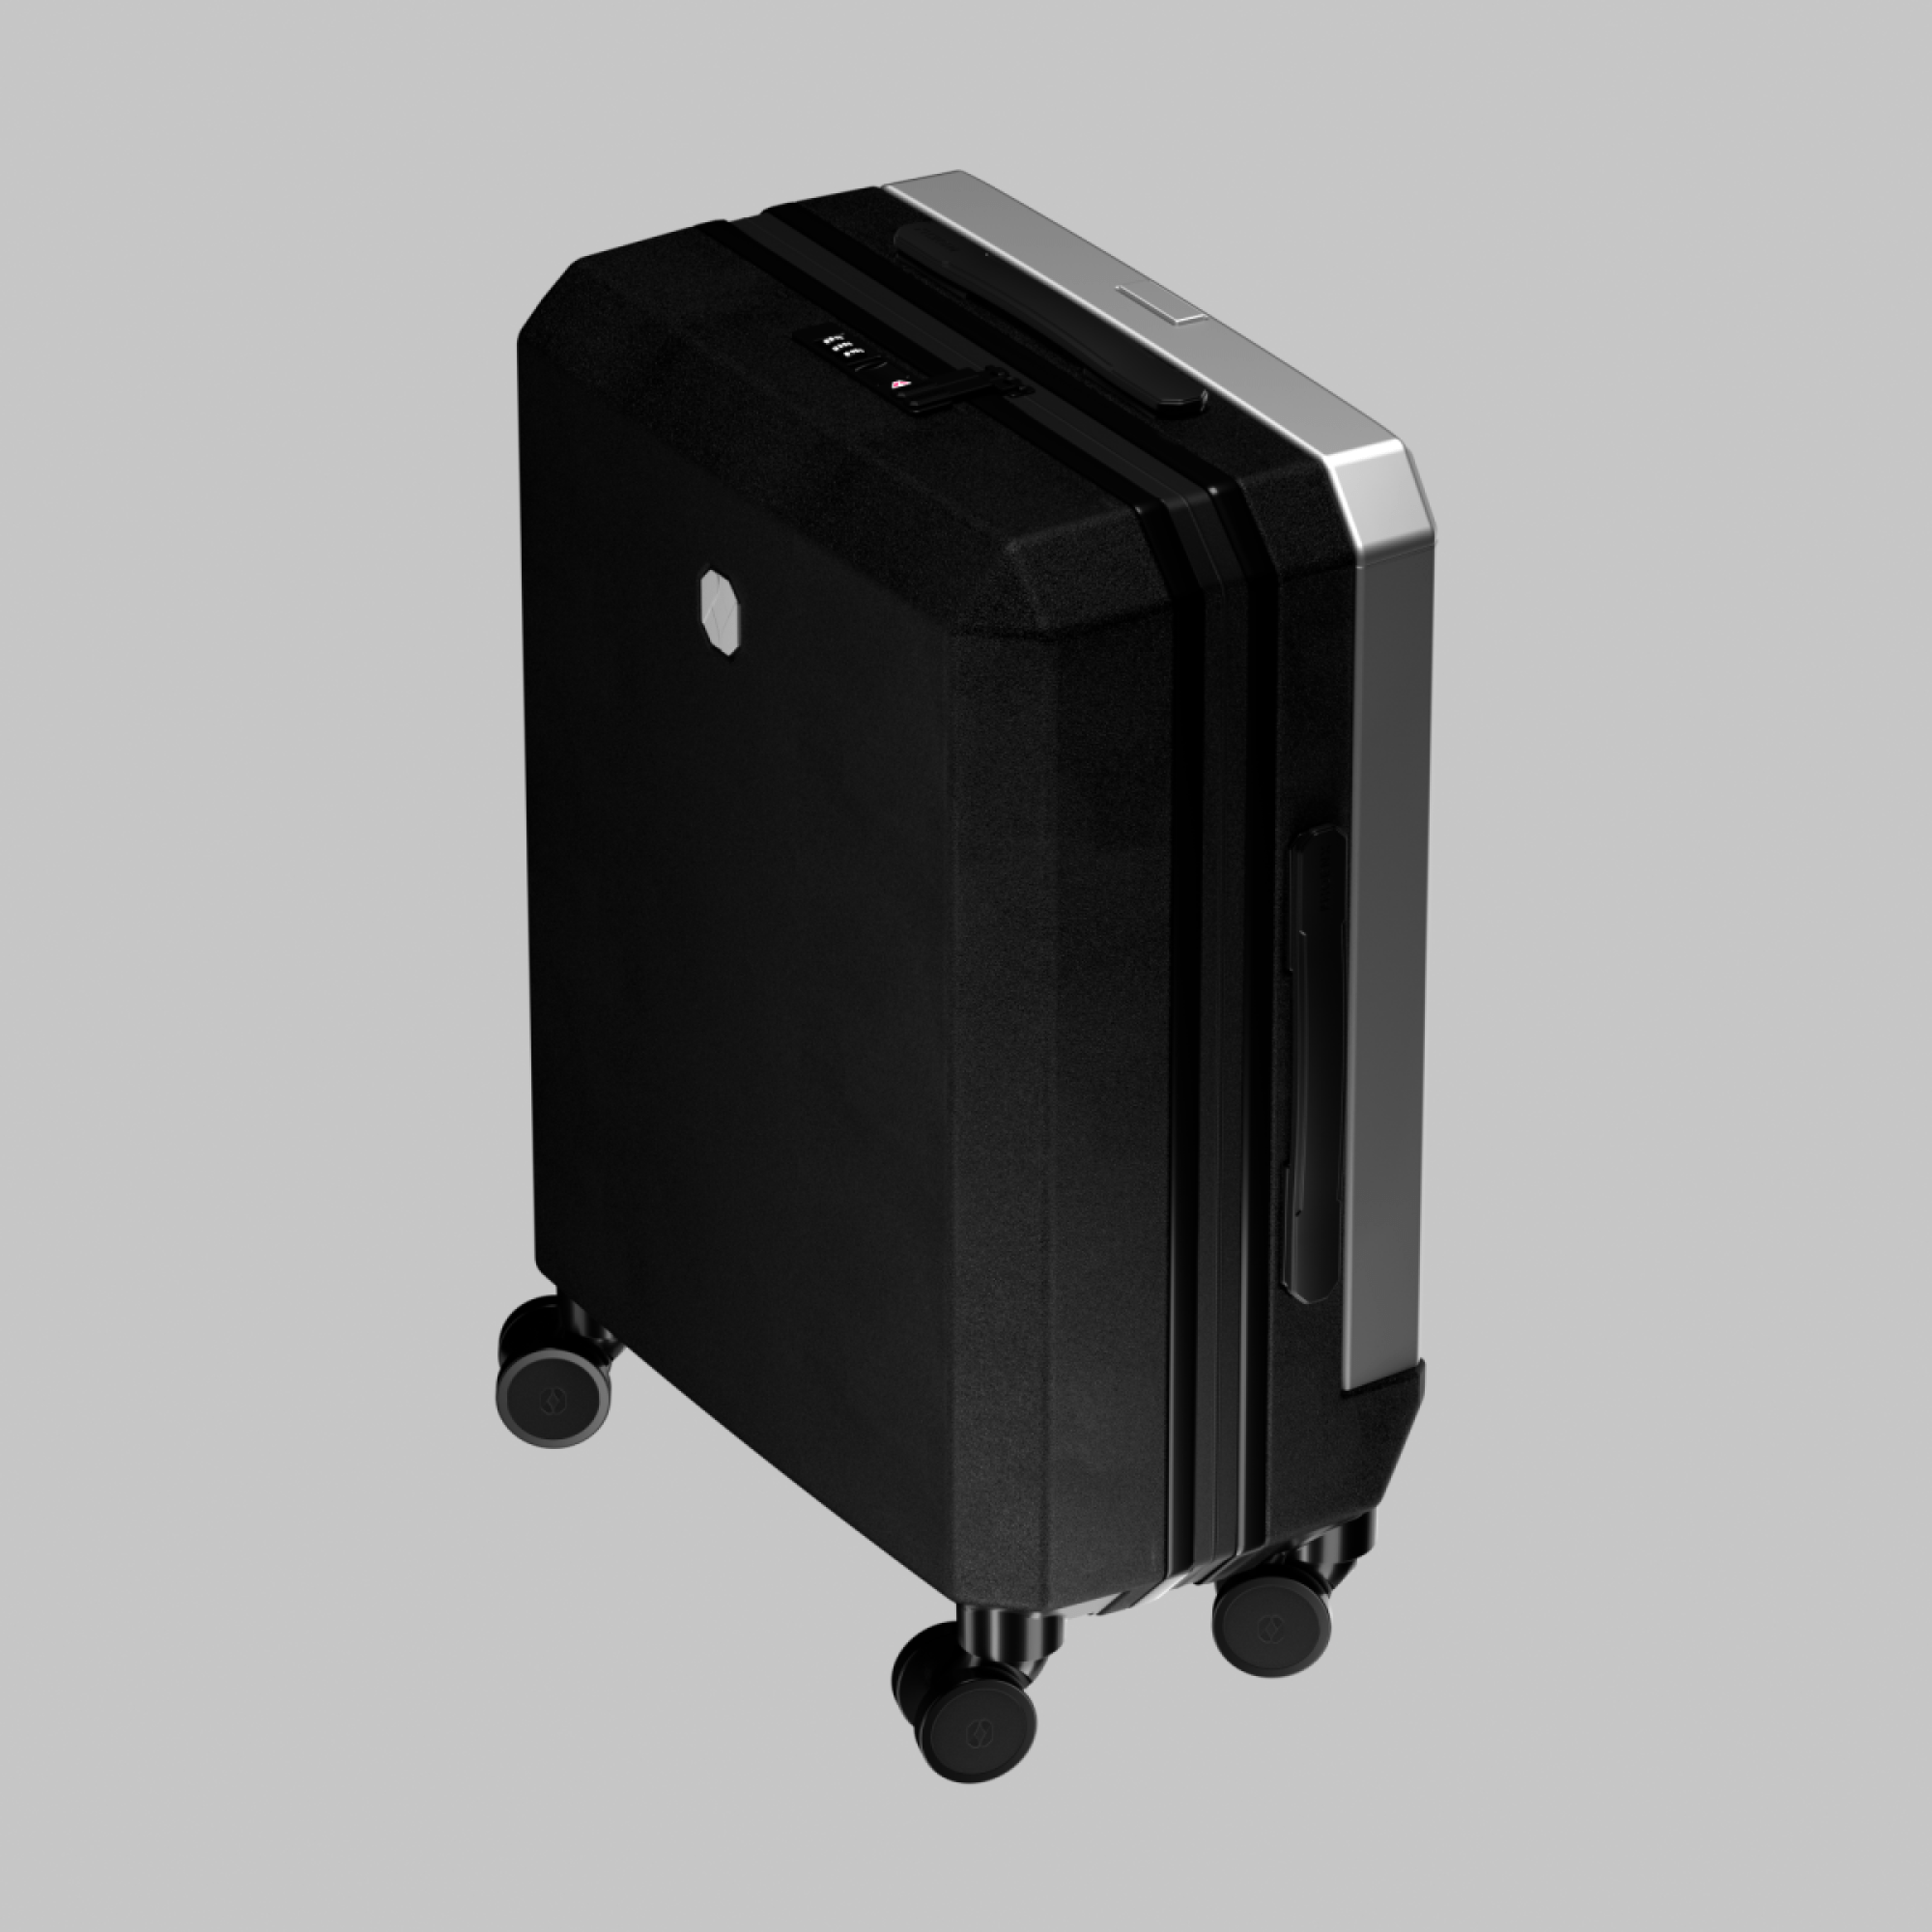 Phoenx Carry-On Suitcase, $210, available here.